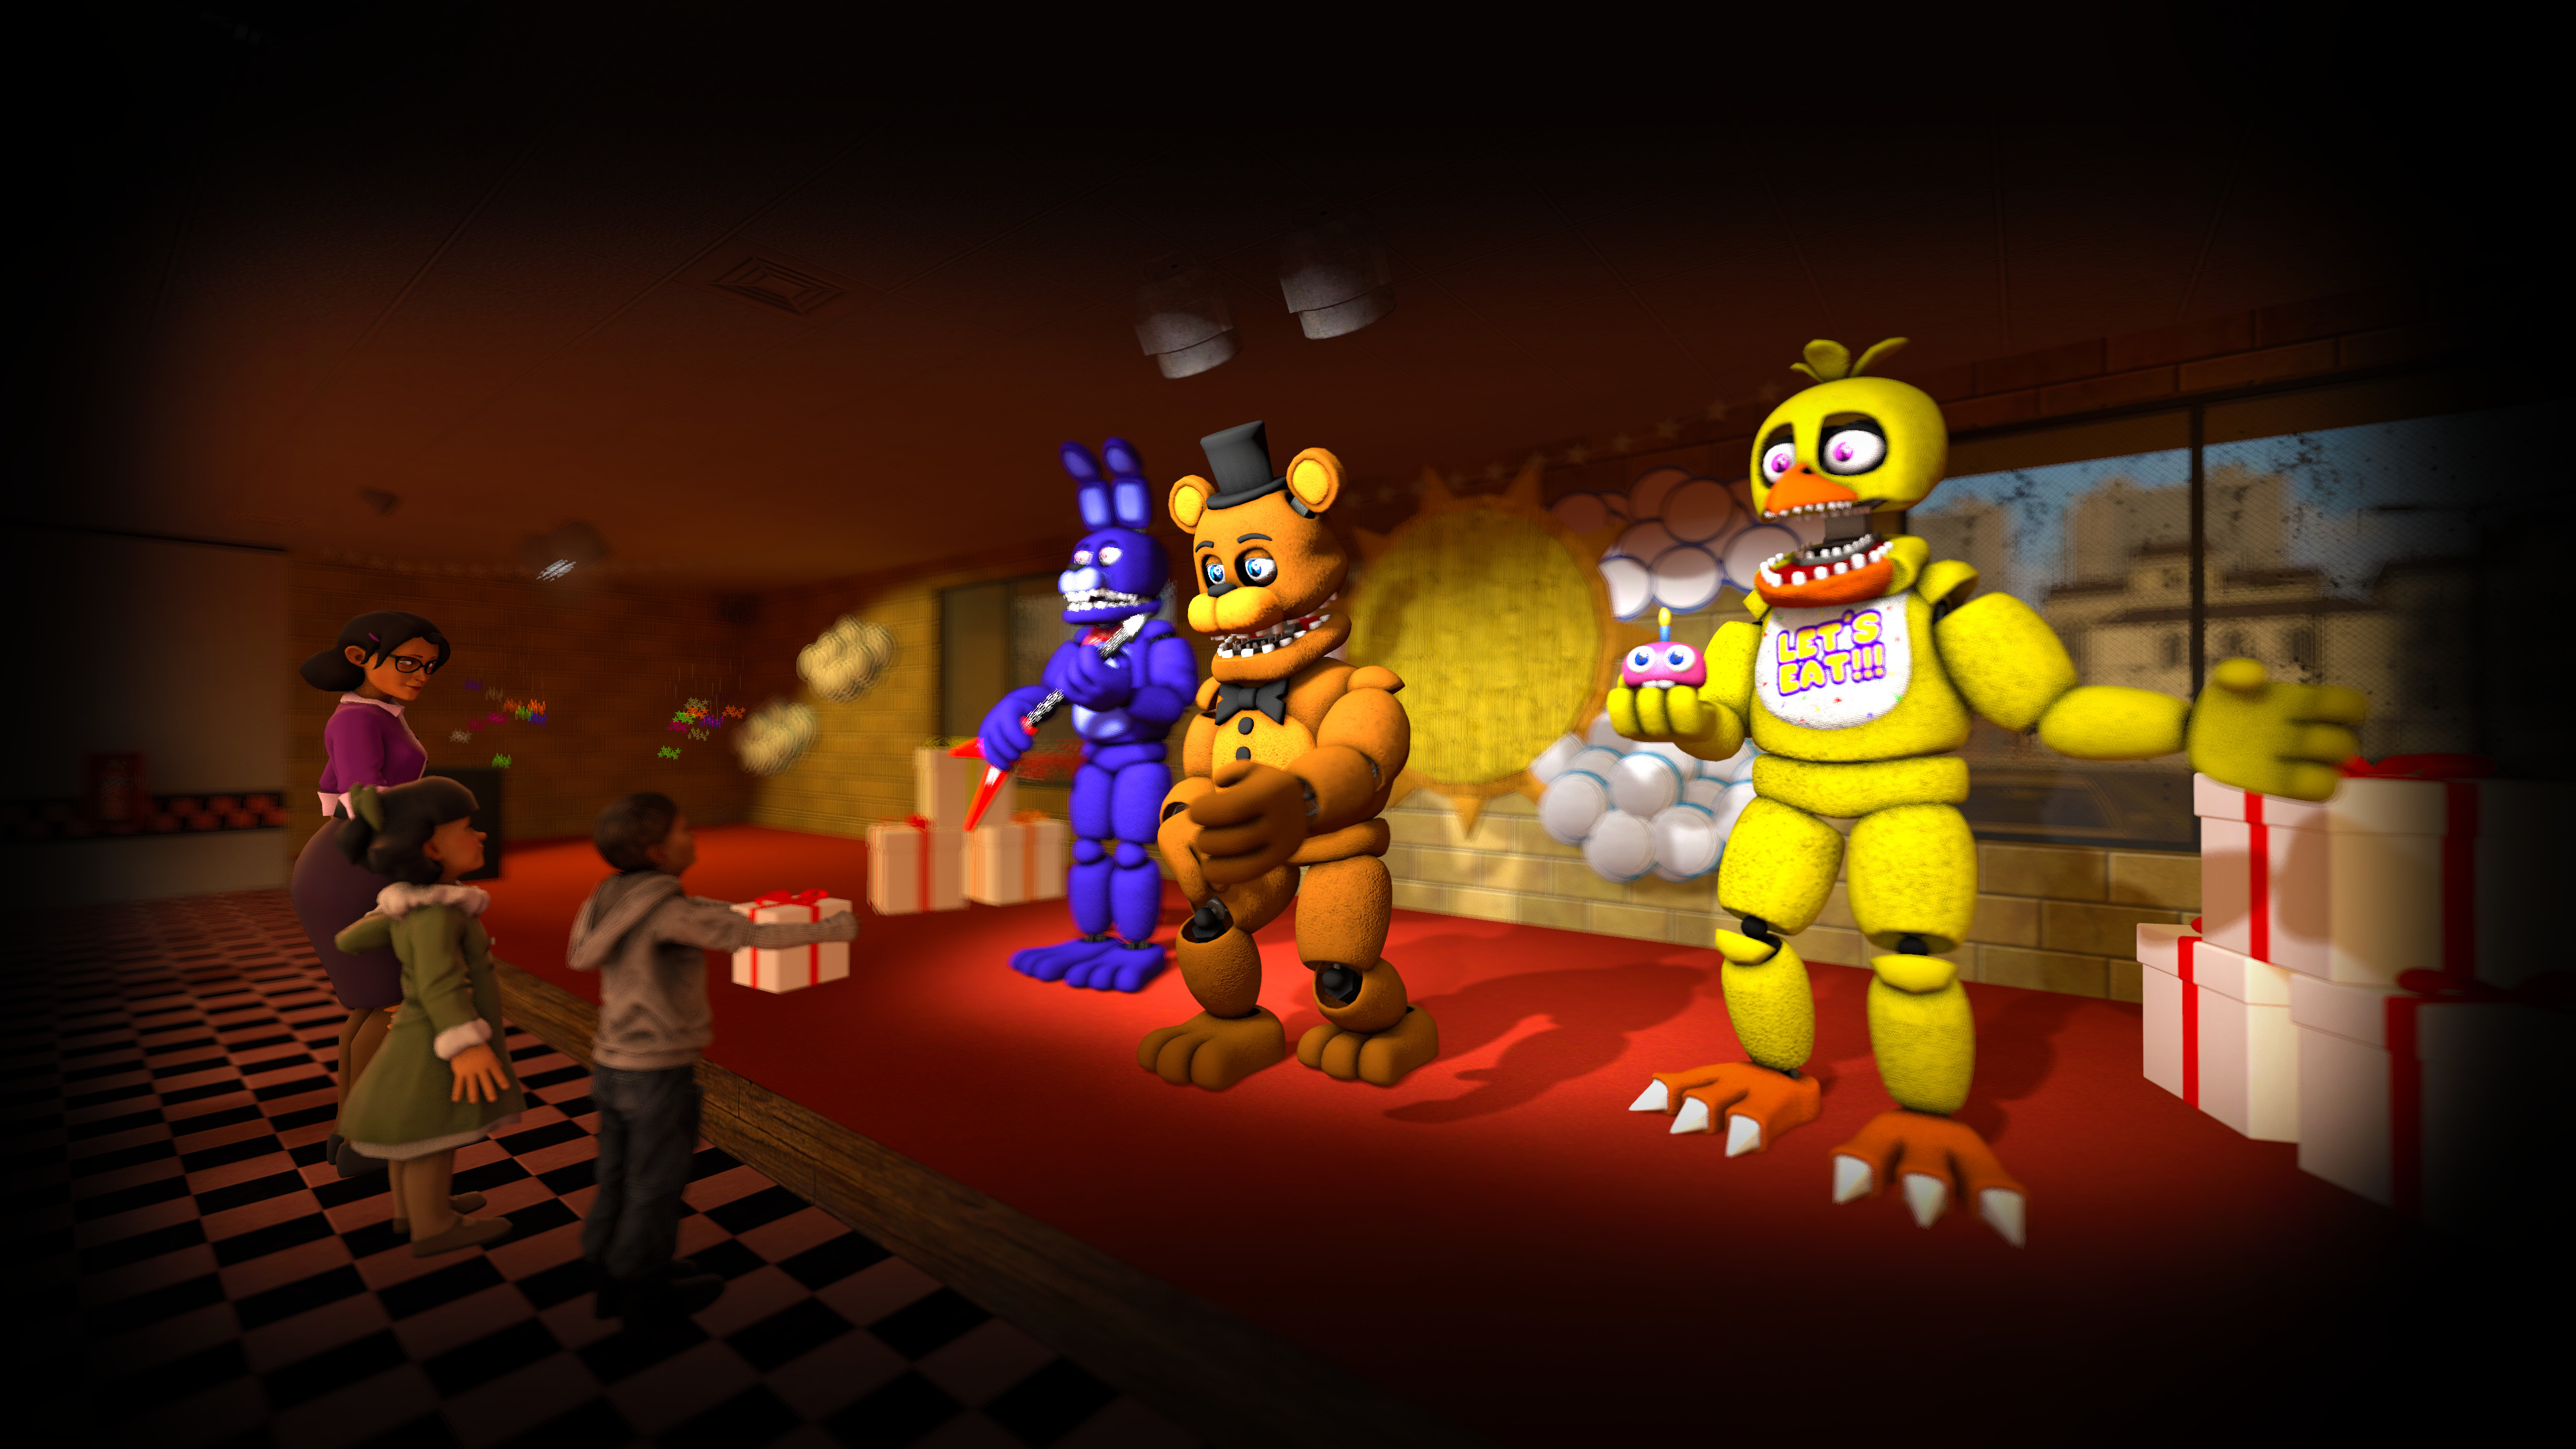 3840x2160 4K FNAF WallPaper by Th3Unkn0wns 4K FNAF WallPaper by Th3Unkn0wns